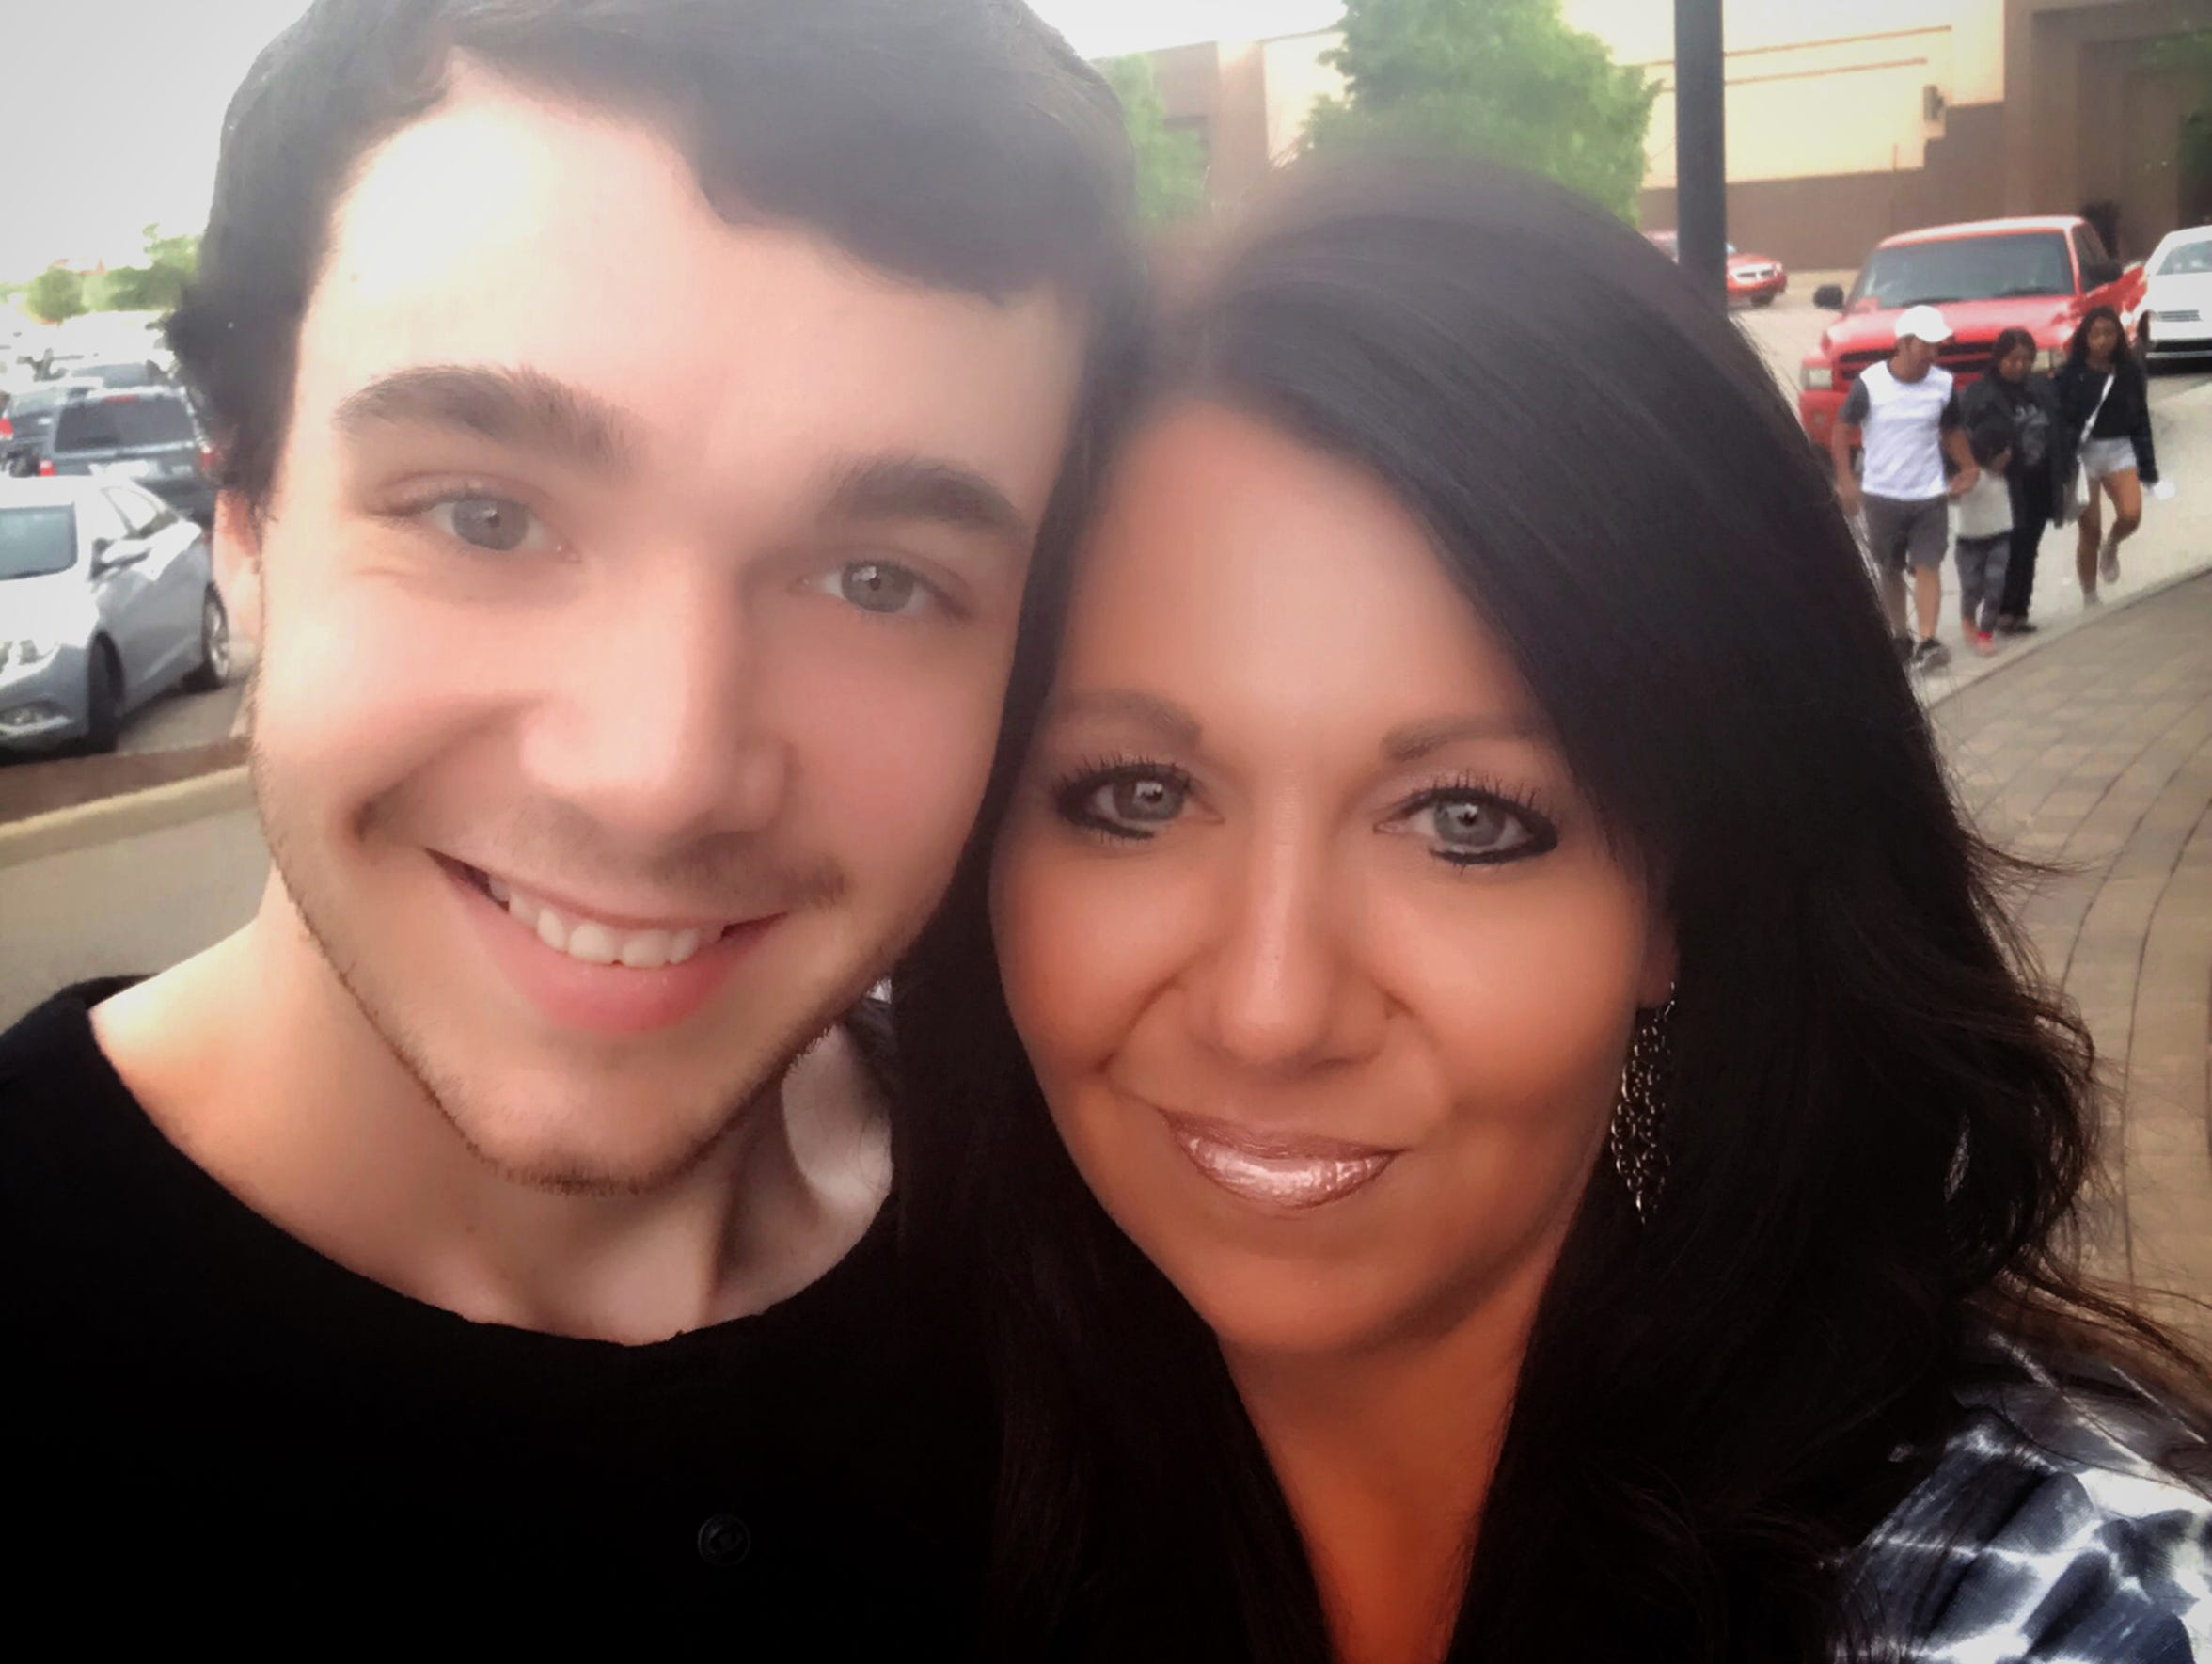 Amanda Cicchinelli with her son, Austin. After he died